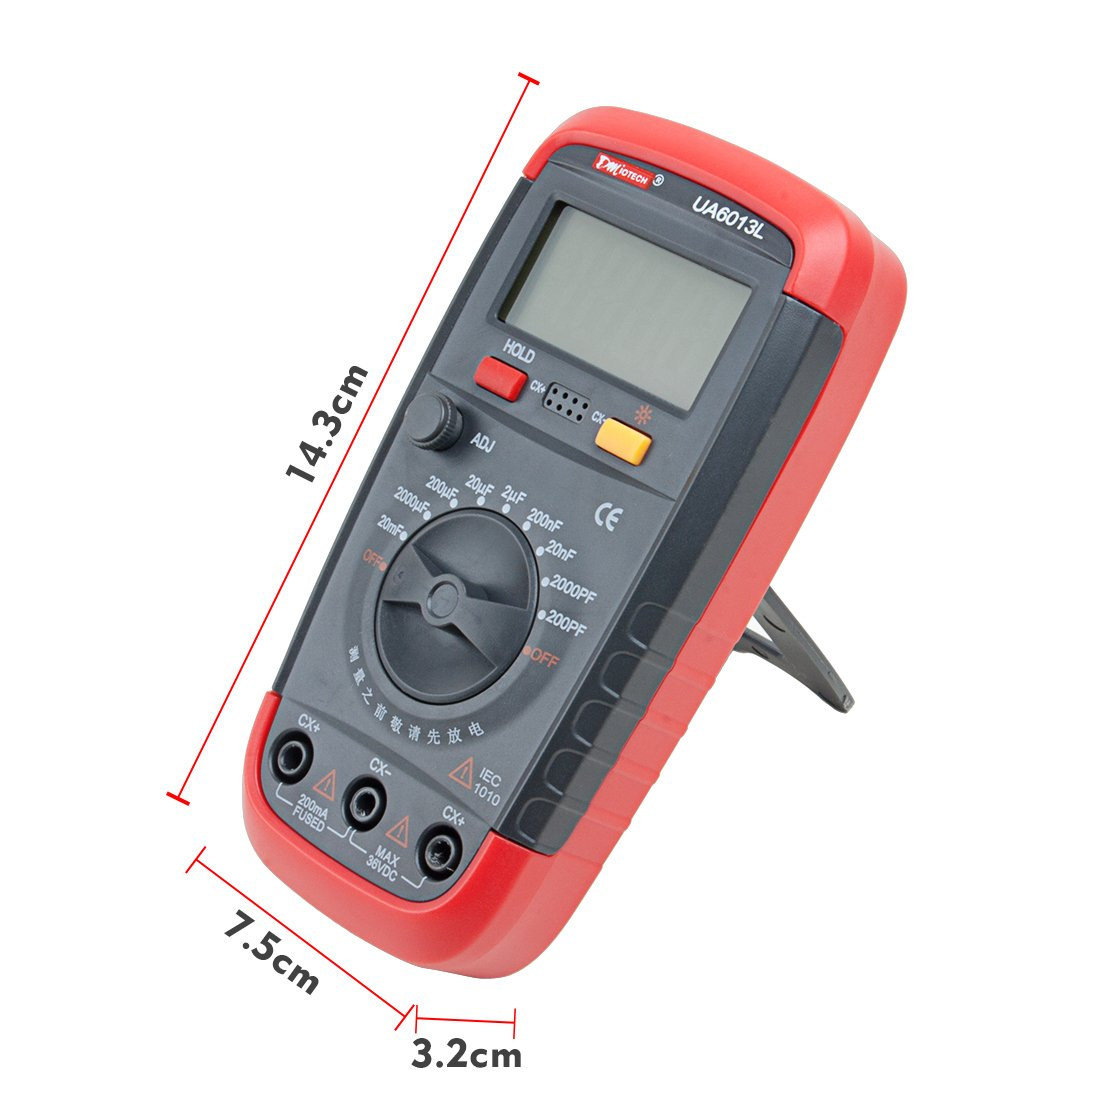 20000uF with LCD Backlight Max 1999 Display w Data Hold Function UA6013L a15062600ux0214 DMiotech Multimeter Digital Capacitance Meter Capacitor Pro Tester 0.1pF